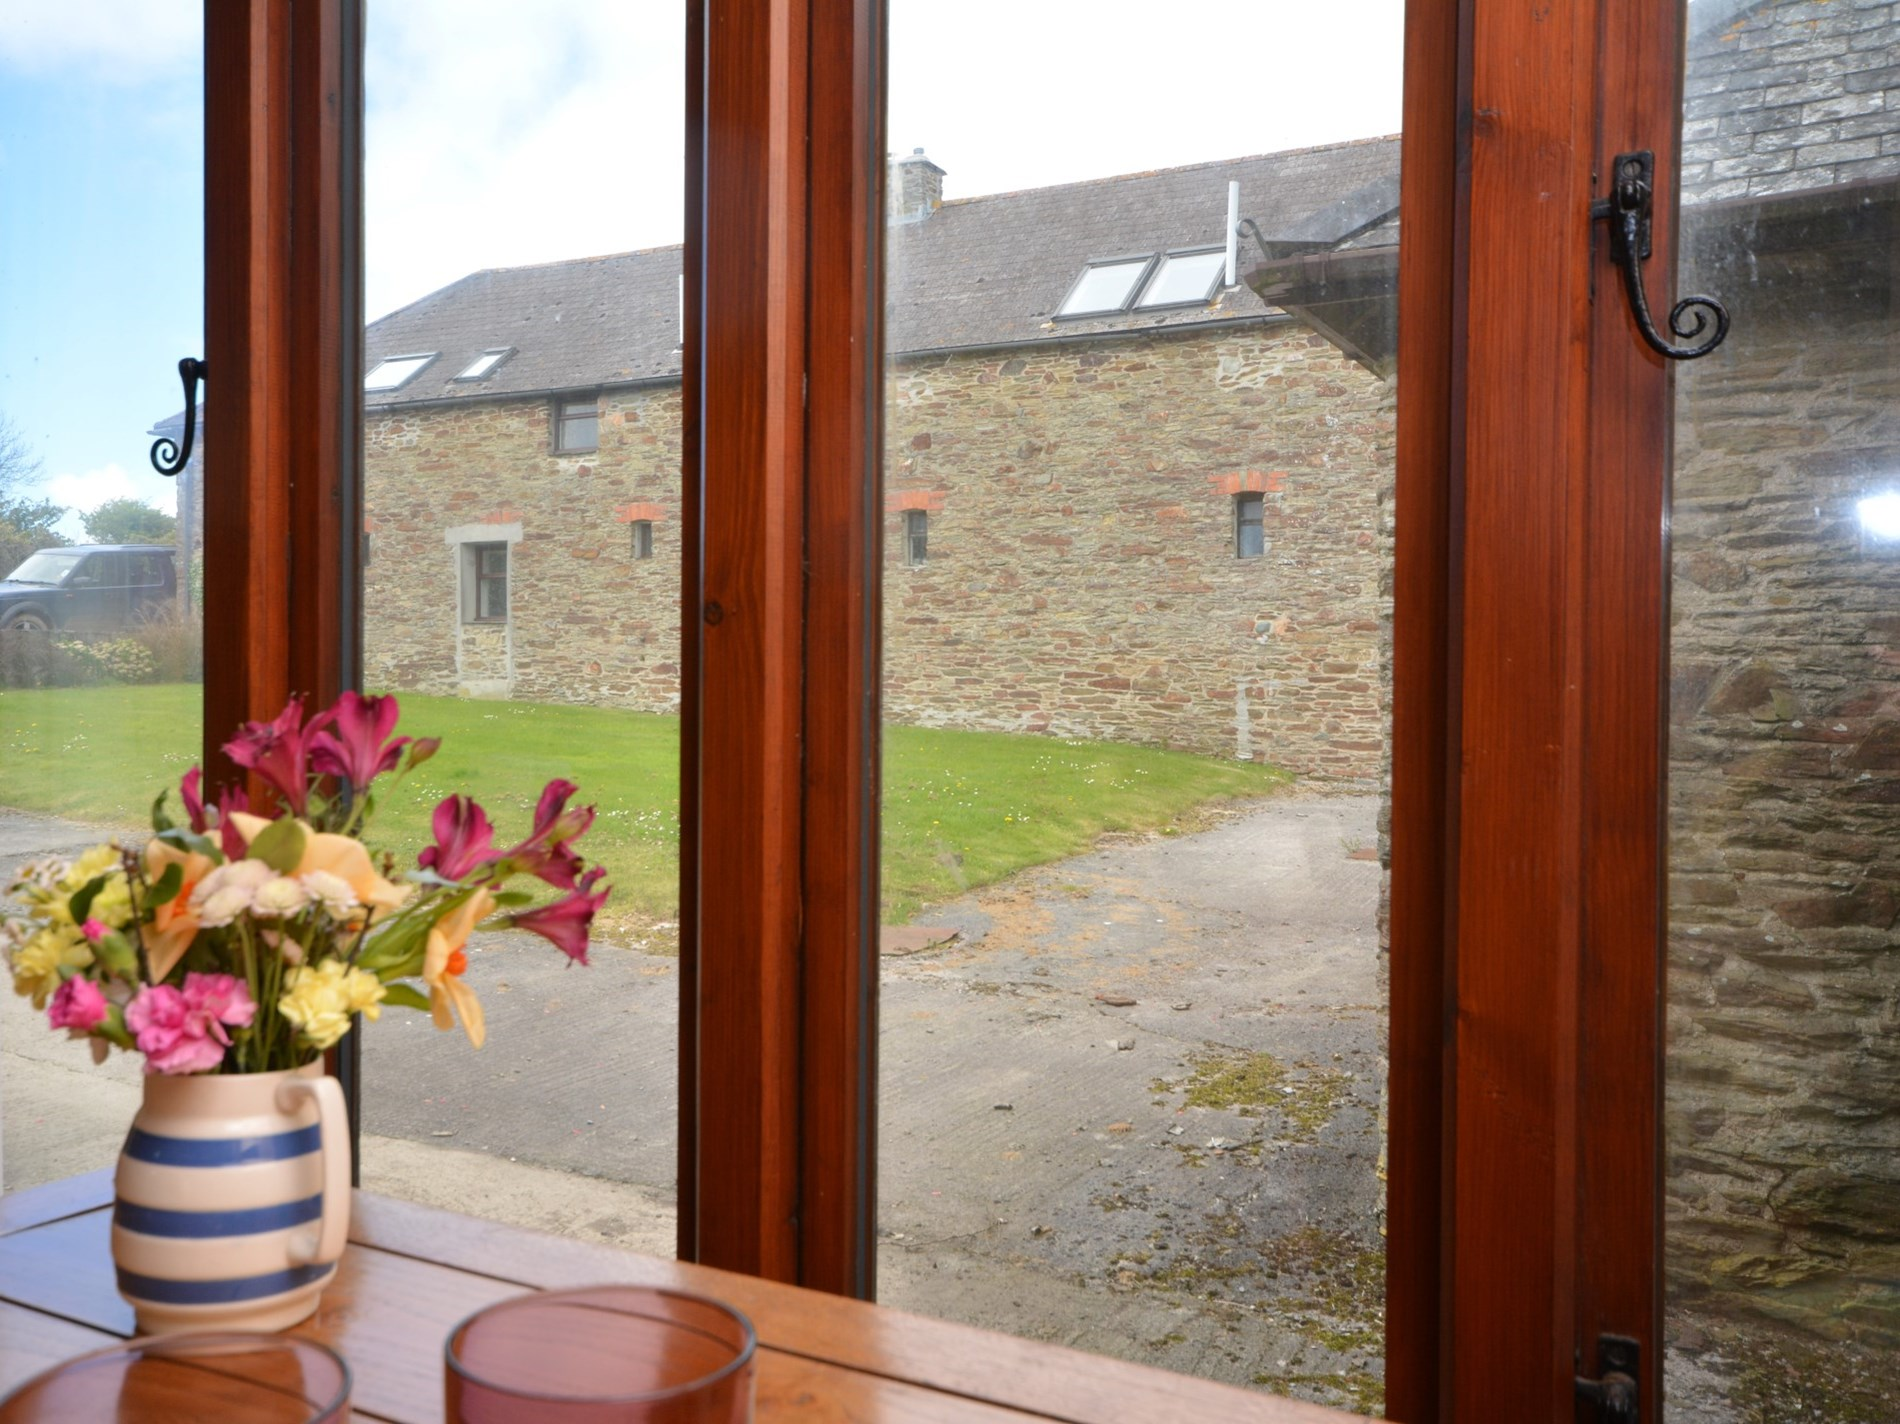 Dine with open views to